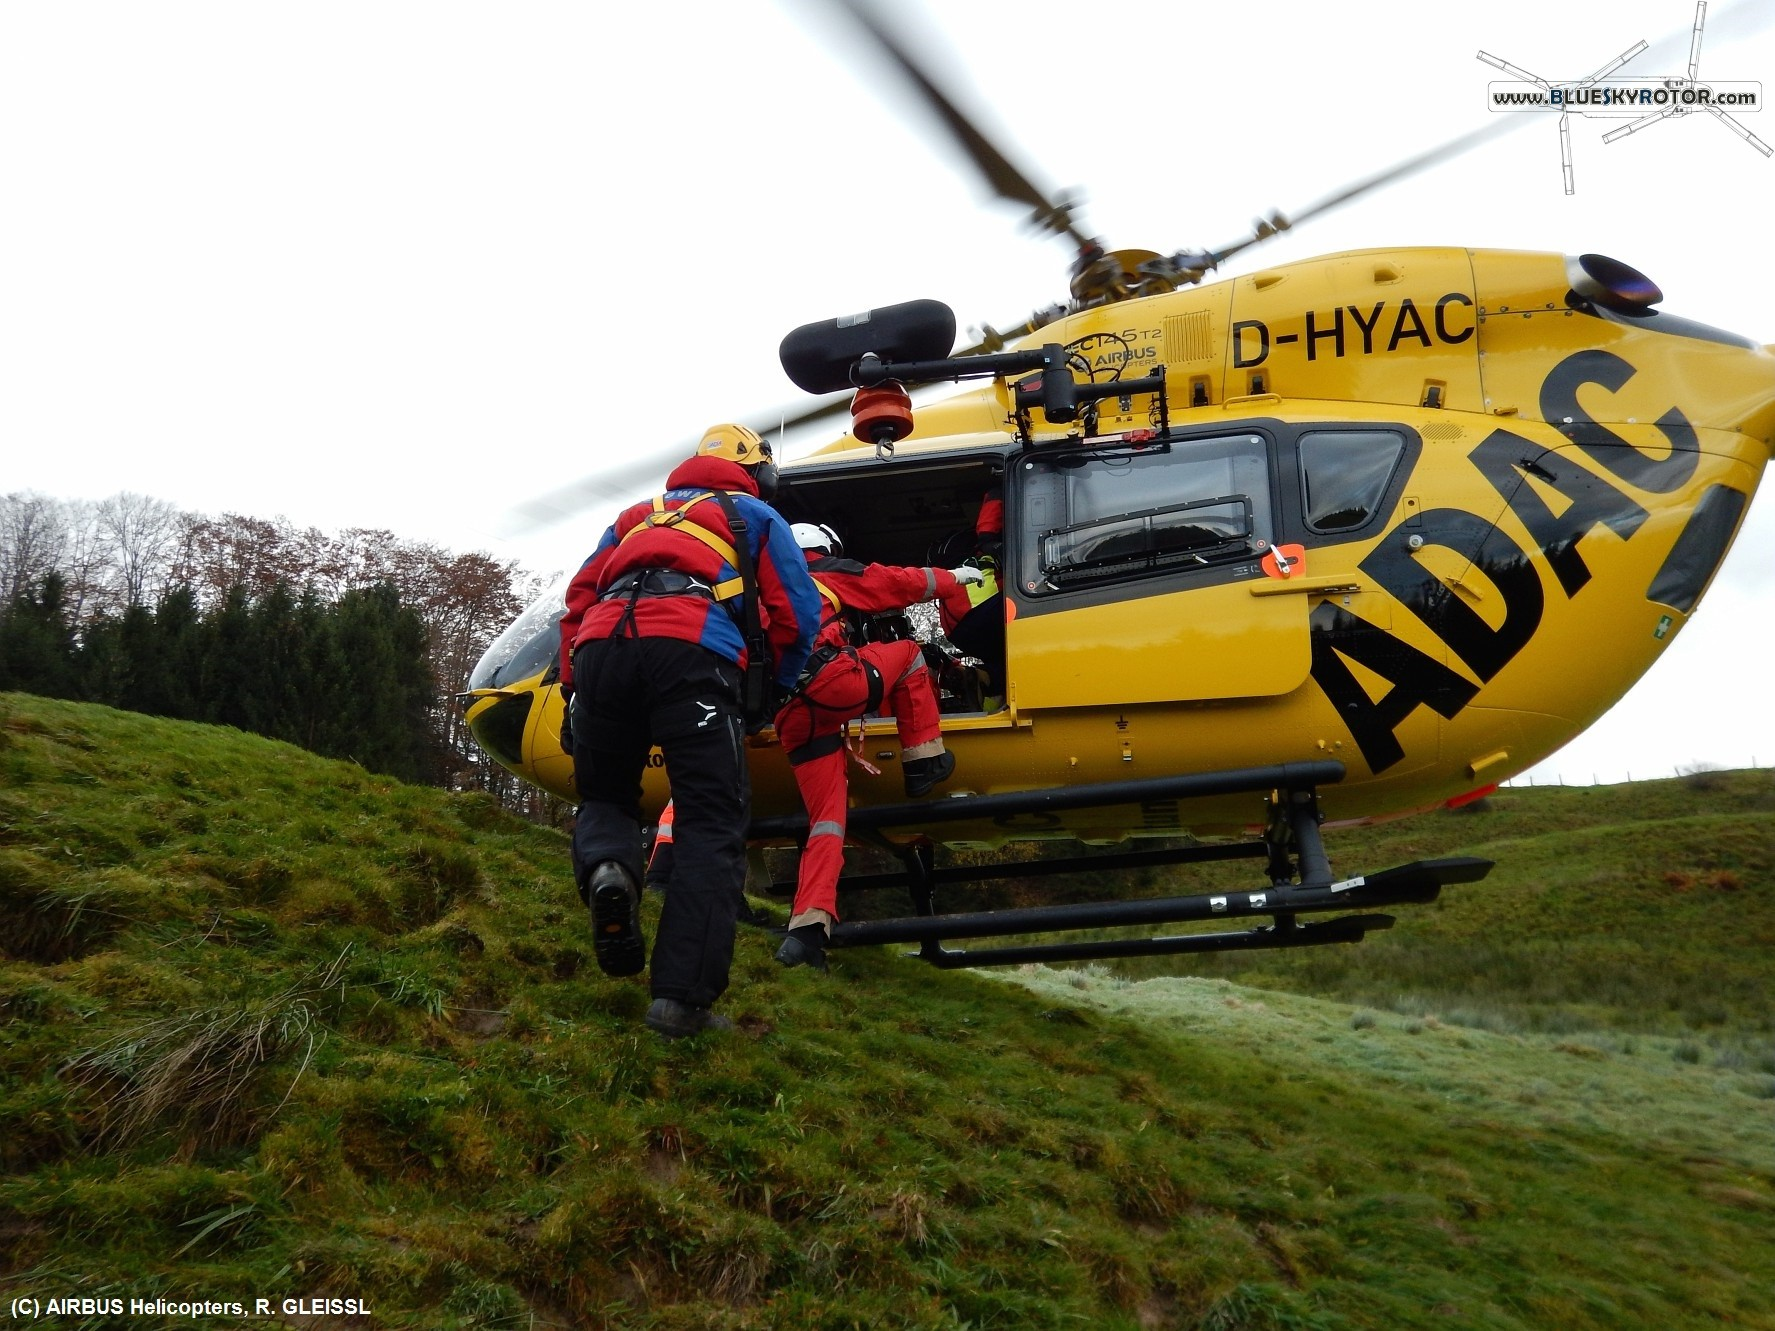 bell helicopter company with Adac First Ec145 T2 Rescue Winch Training on EC120 Bell407 Bo105 moreover Wiki 2 20 777 800 View 1970 1980 Profile 1979 Bapocalypse Now B also 6878529881 as well 6295438586 also Pictures Bells Third 525 Relentless Takes Flight I 424645.